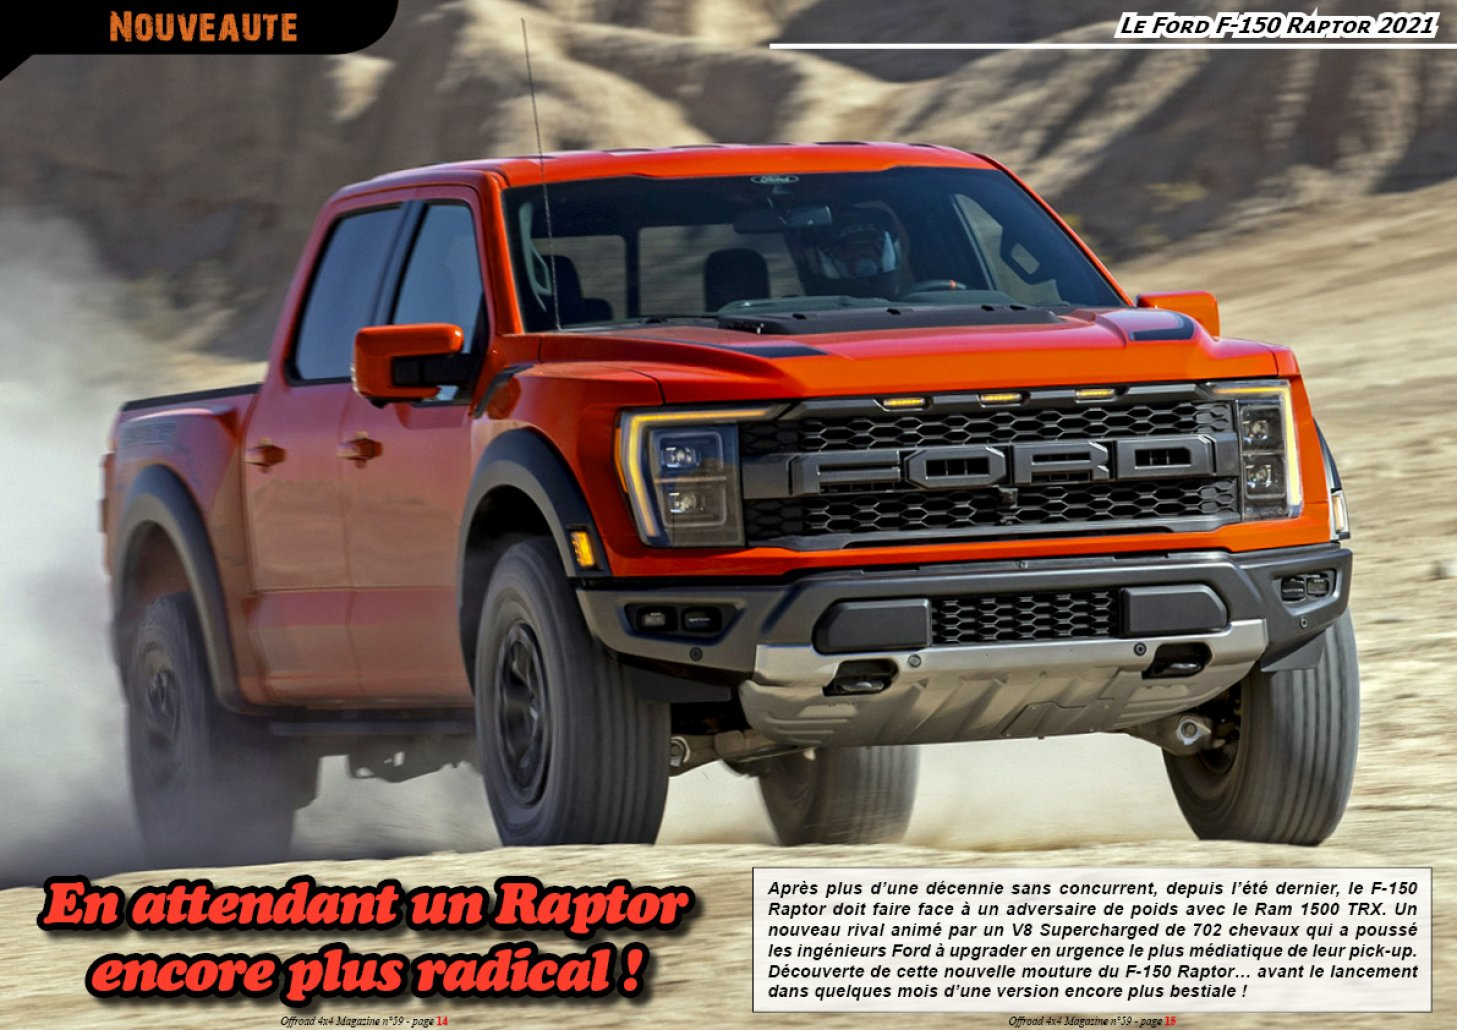 Le Ford F-150 Raptor 2021